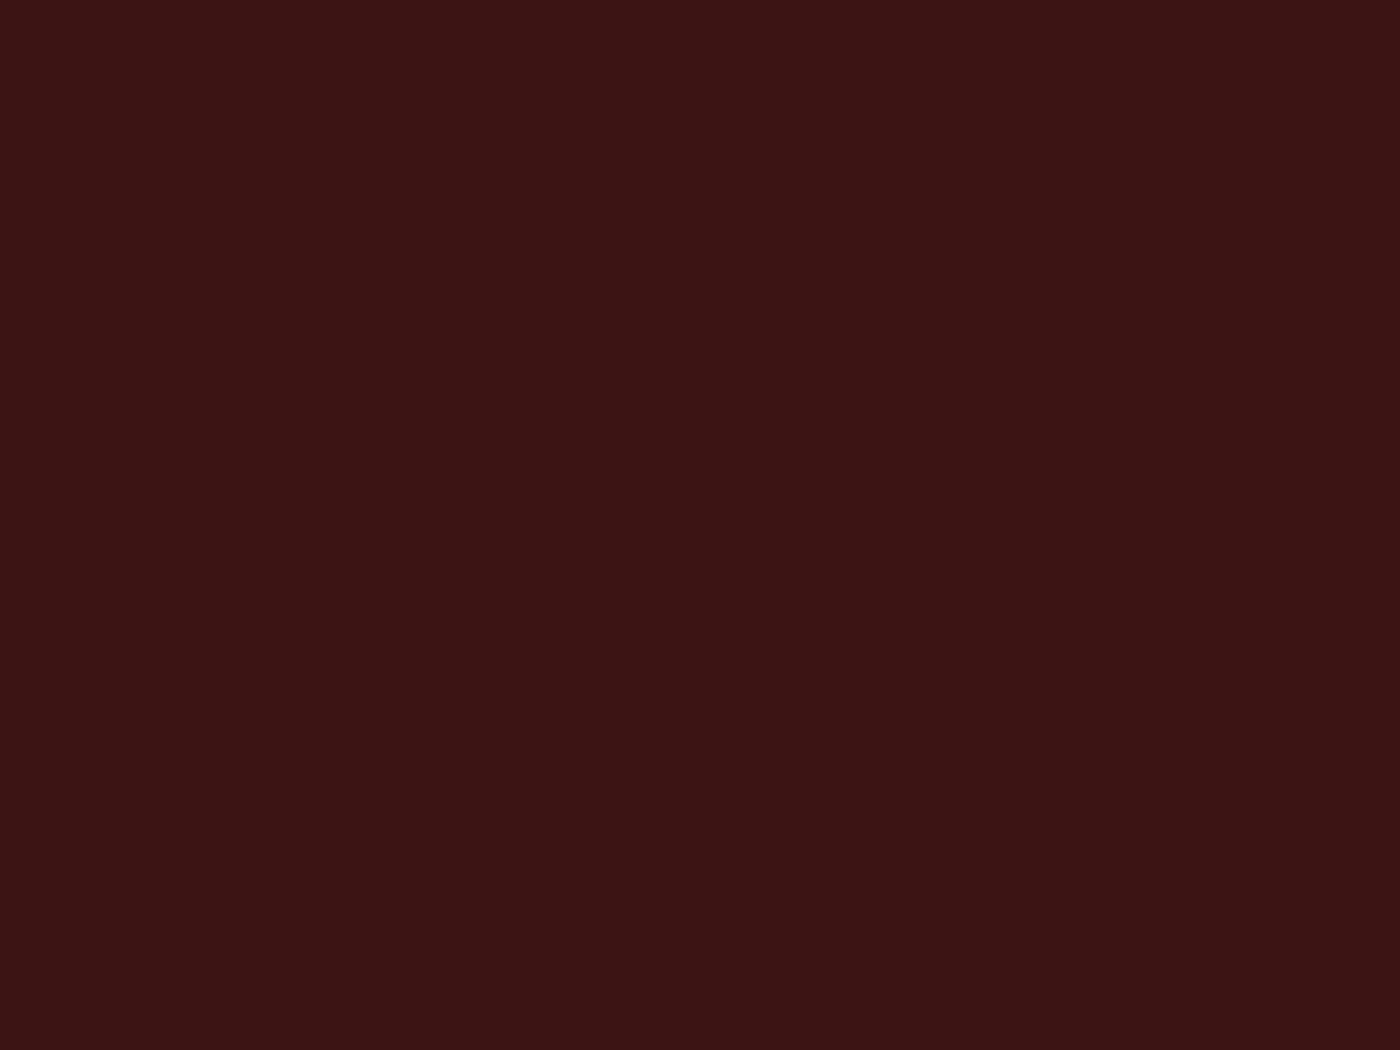 1400x1050 Dark Sienna Solid Color Background